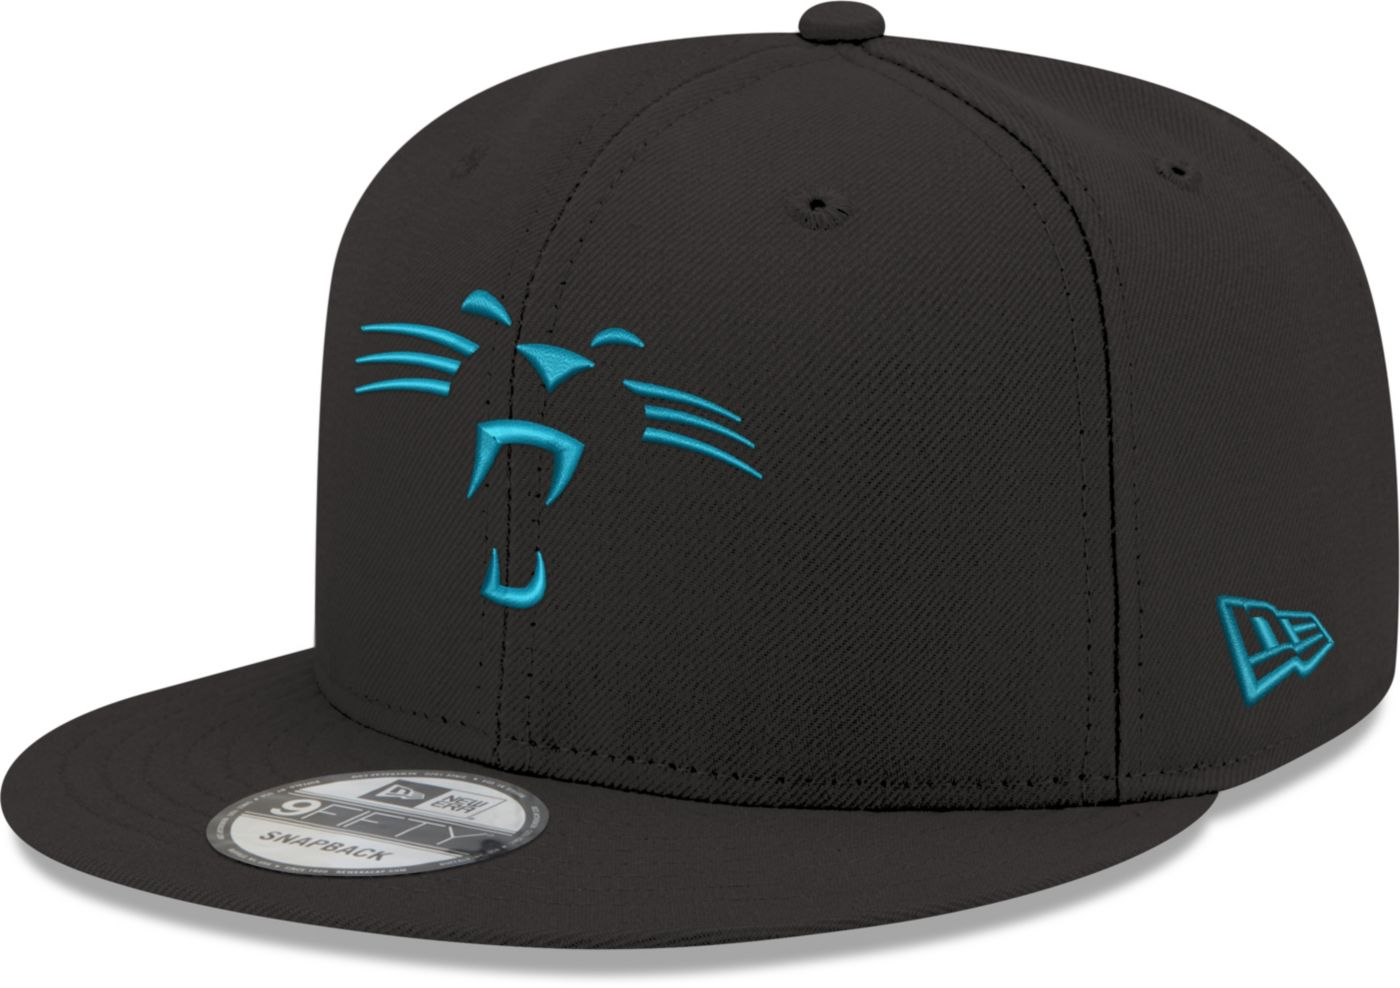 New Era Men's Carolina Panthers Elemental 9Fifty Adjustable Black Hat